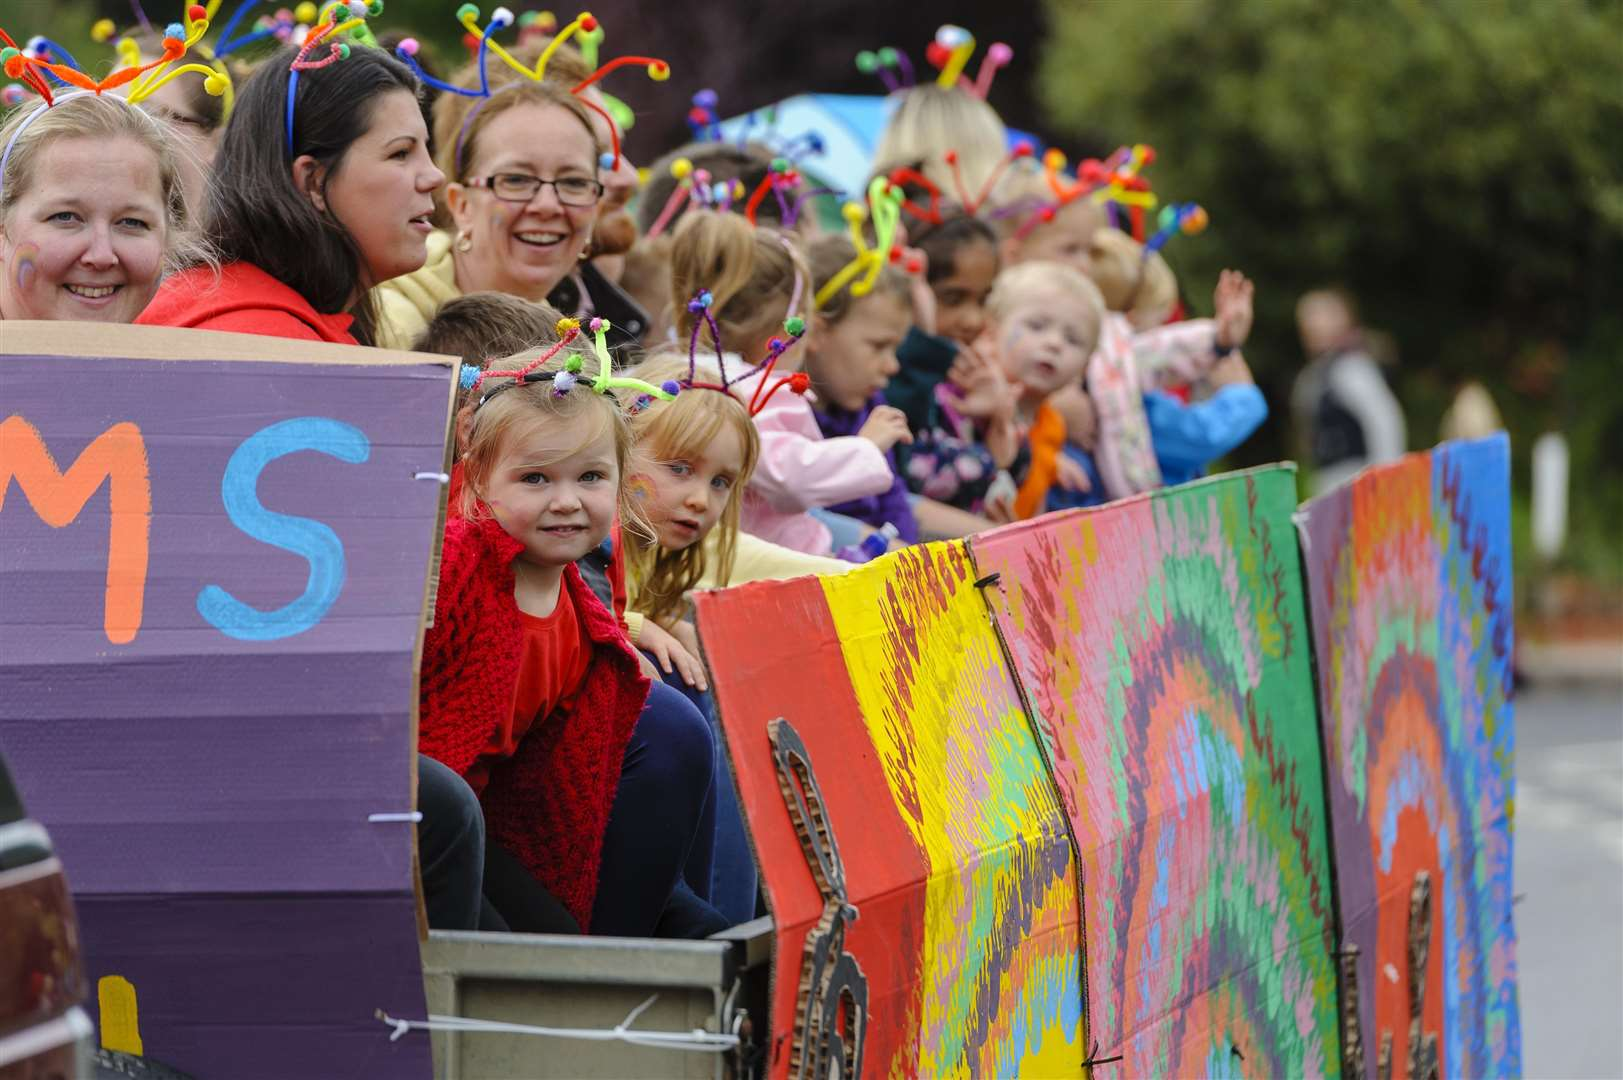 The Pulham Market Carnival parades through the village. For more pictures from the Pulham Market Carnival, see this Friday's Diss Express newspaper.